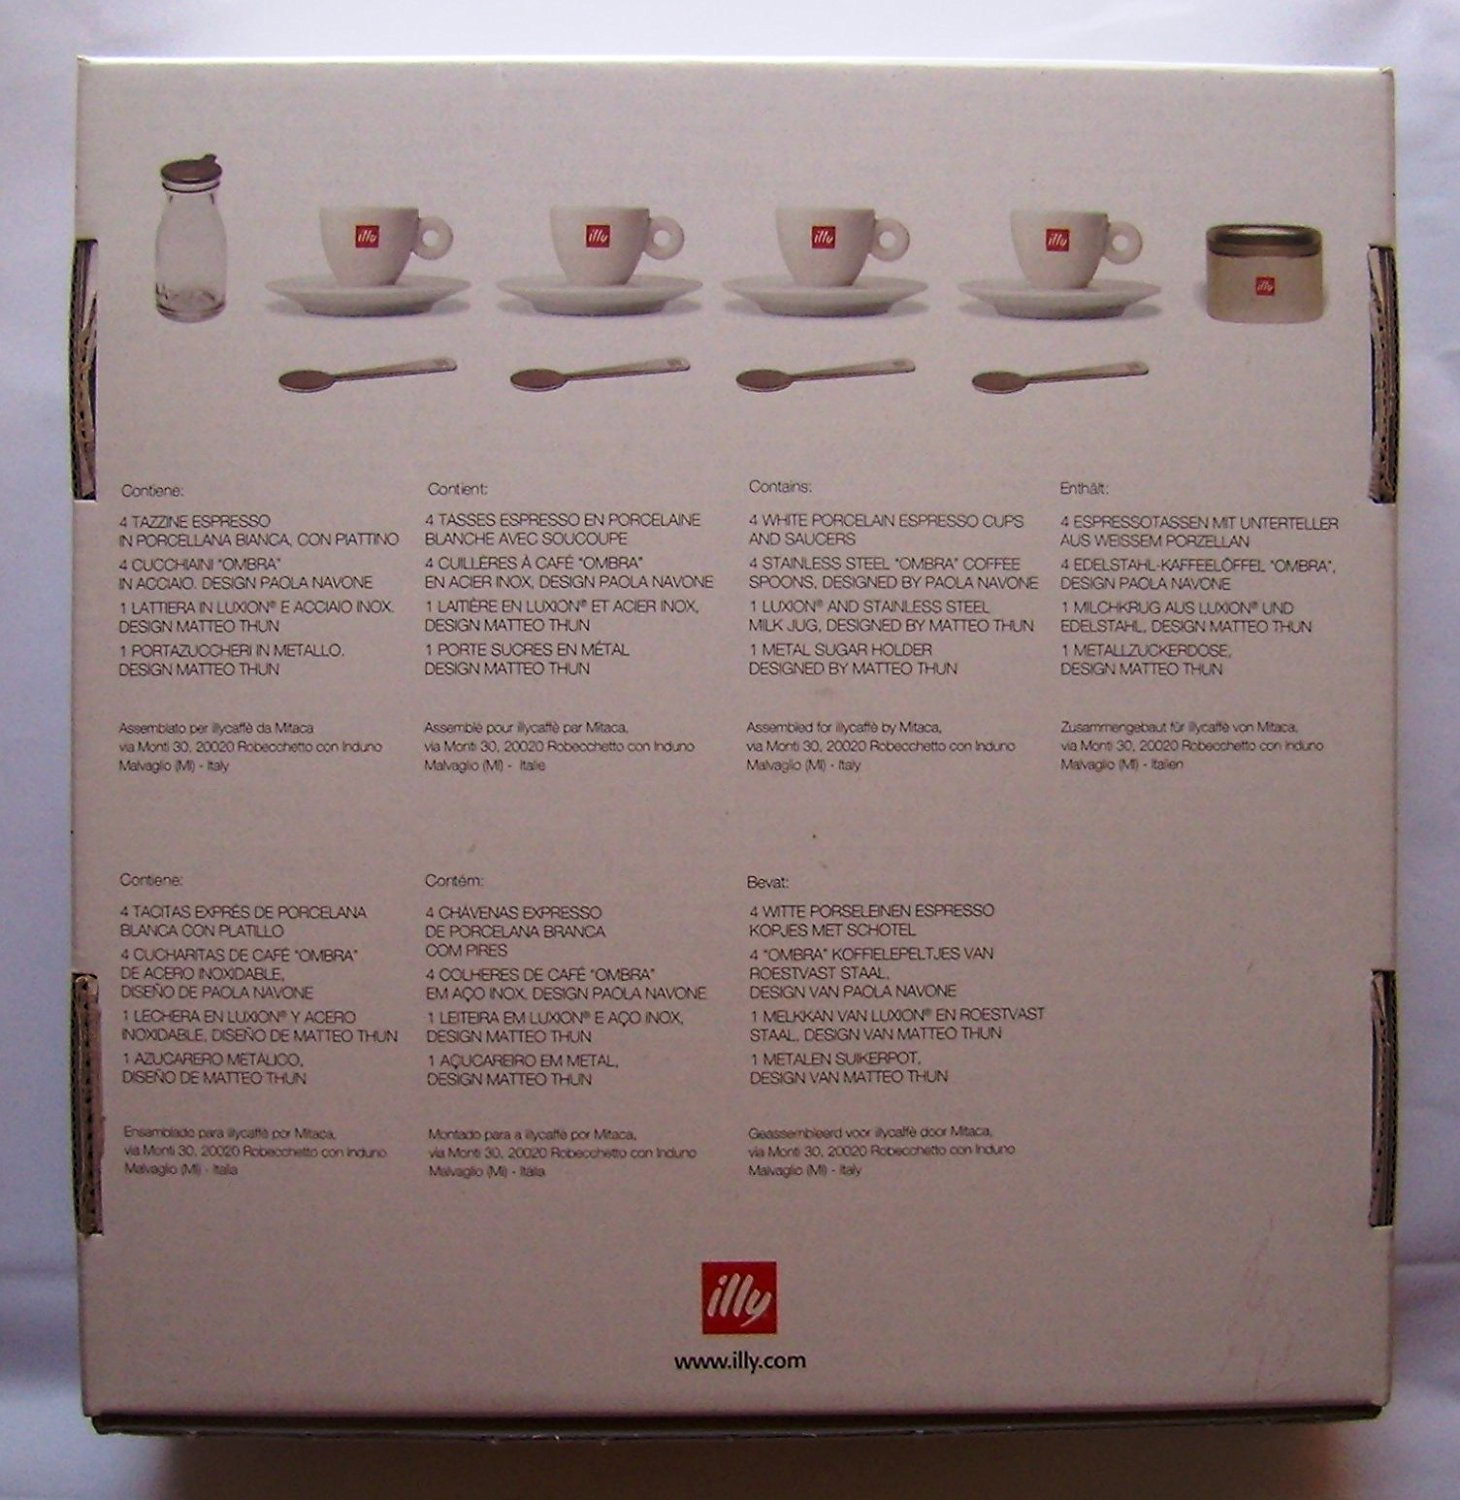 ILLY ART COLLECTION - WELCOME TO THE ILLY WORLD by Matteo Thun - 4 Espresso Cups + Metal Sugar Bowl & Milk Glass + 4 Spoons by Paola Navone - Gift Set Box by ILLY ART COLLECTION - WELCOME TO THE ILLY WORLD by Matteo Thun - 4 Espresso Cups